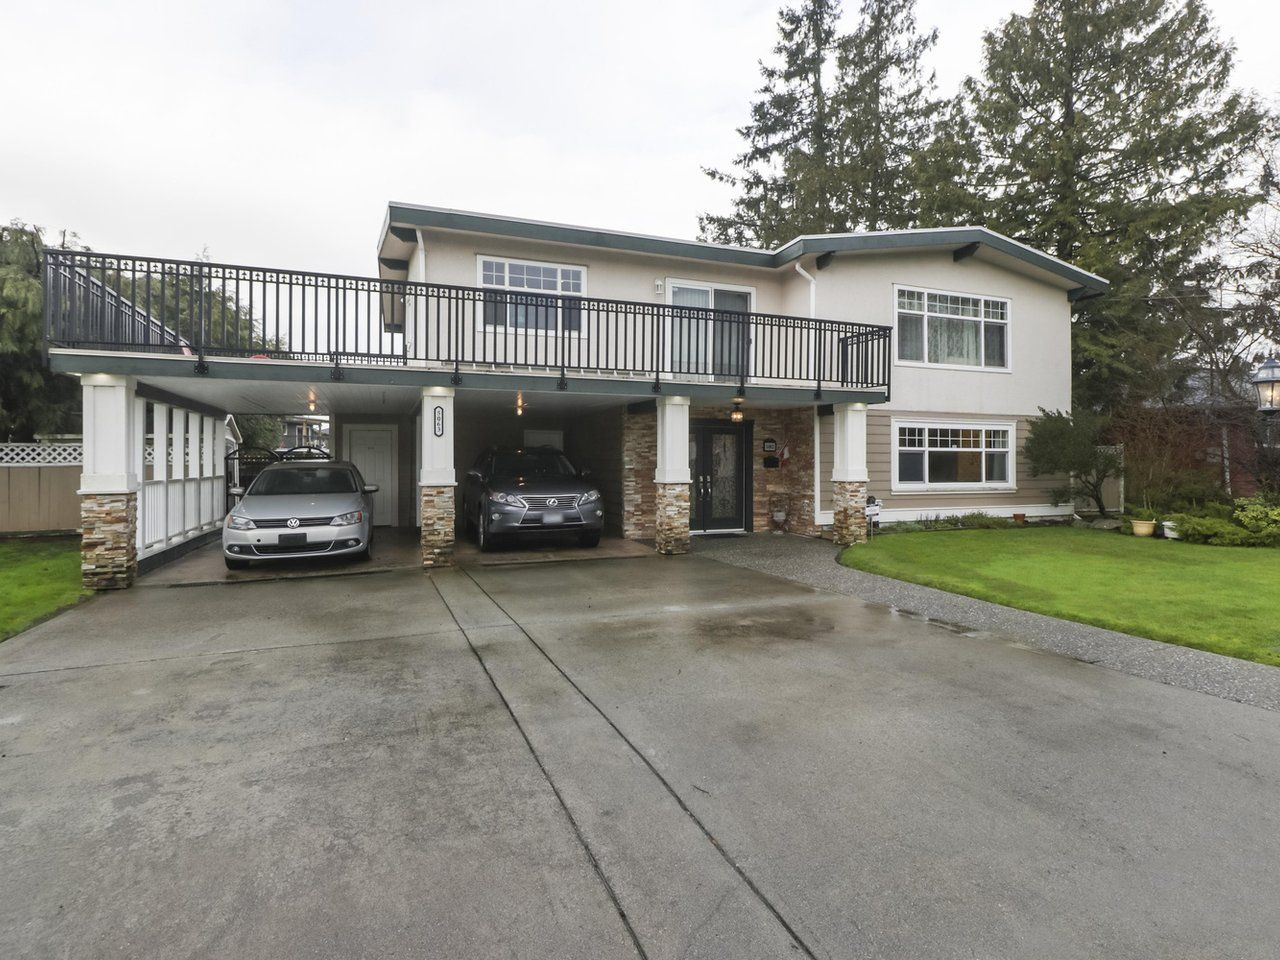 Main Photo: 5063 59 Street in Delta: Hawthorne House for sale (Ladner)  : MLS®# R2428573